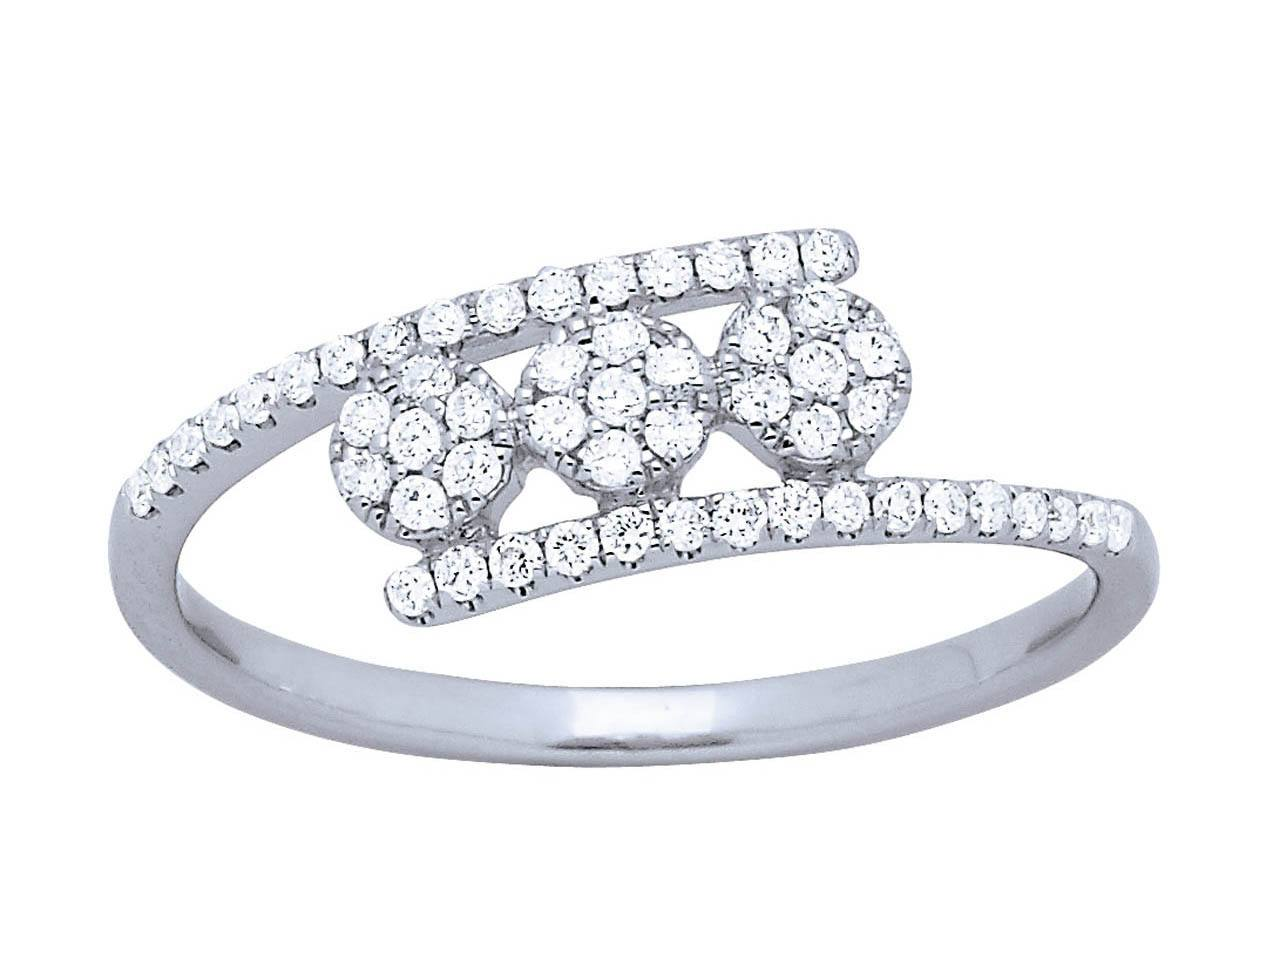 Bague trilogie tout sertie diamants, Or gris, diamants 0,22 ct, doigt 56